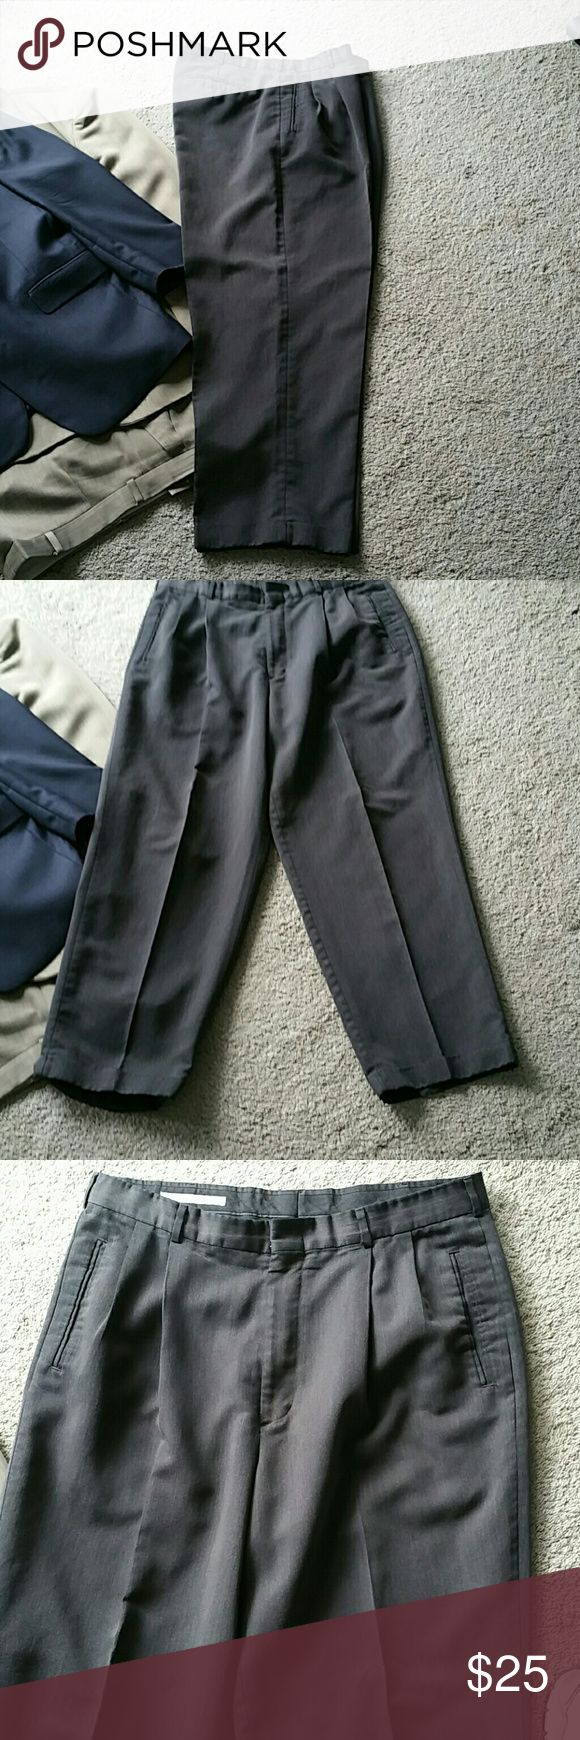 Charcoal gray Men's Dress Pants Pleated Pants,  36x30 Bundle with Shirts and Save! Perry Ellis Pants Dress